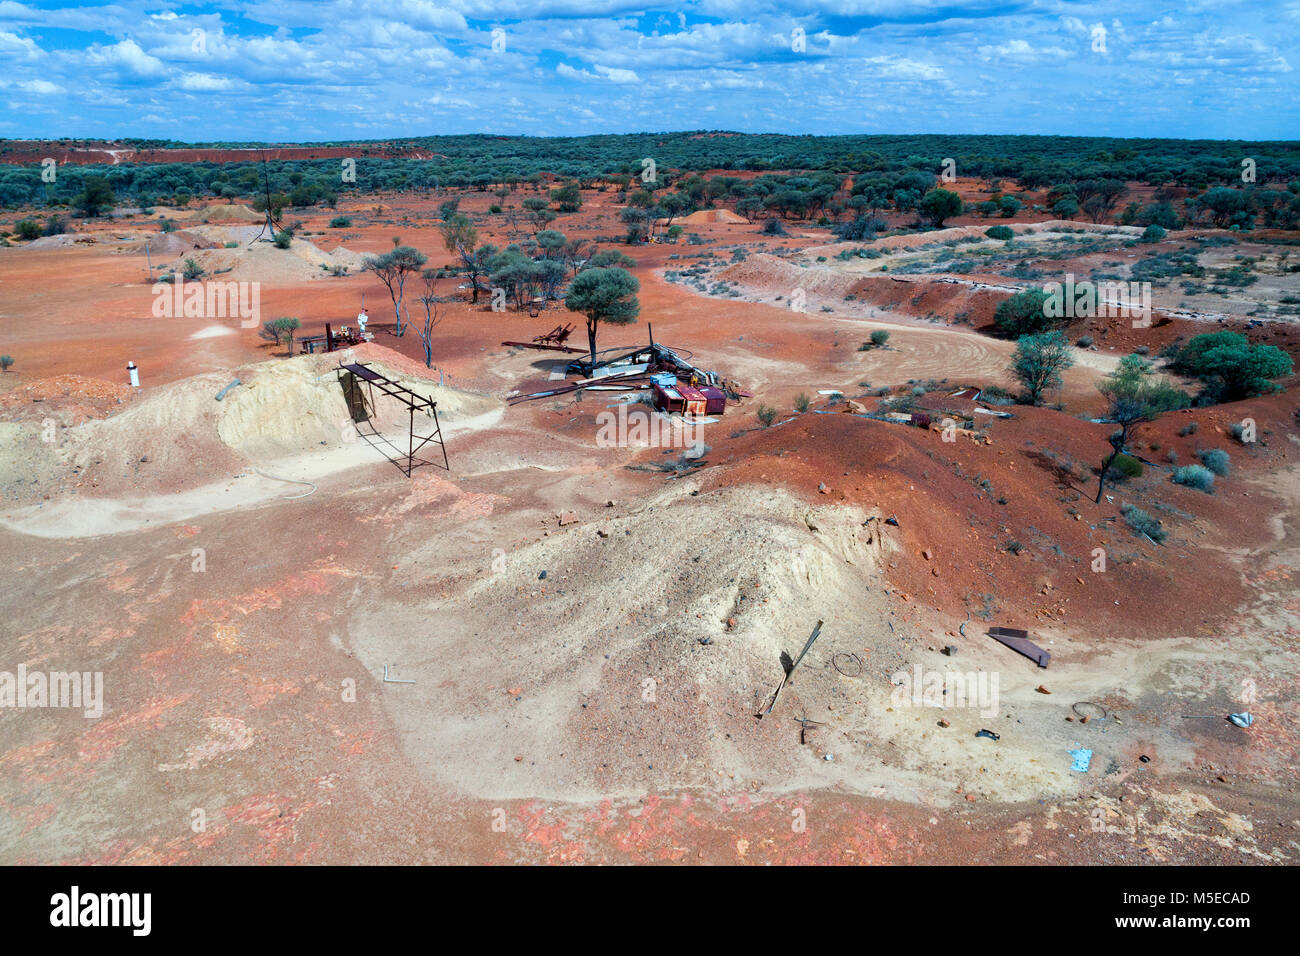 Remains of gold mining activities seen from the air, Murchison, Western Australia - Stock Image